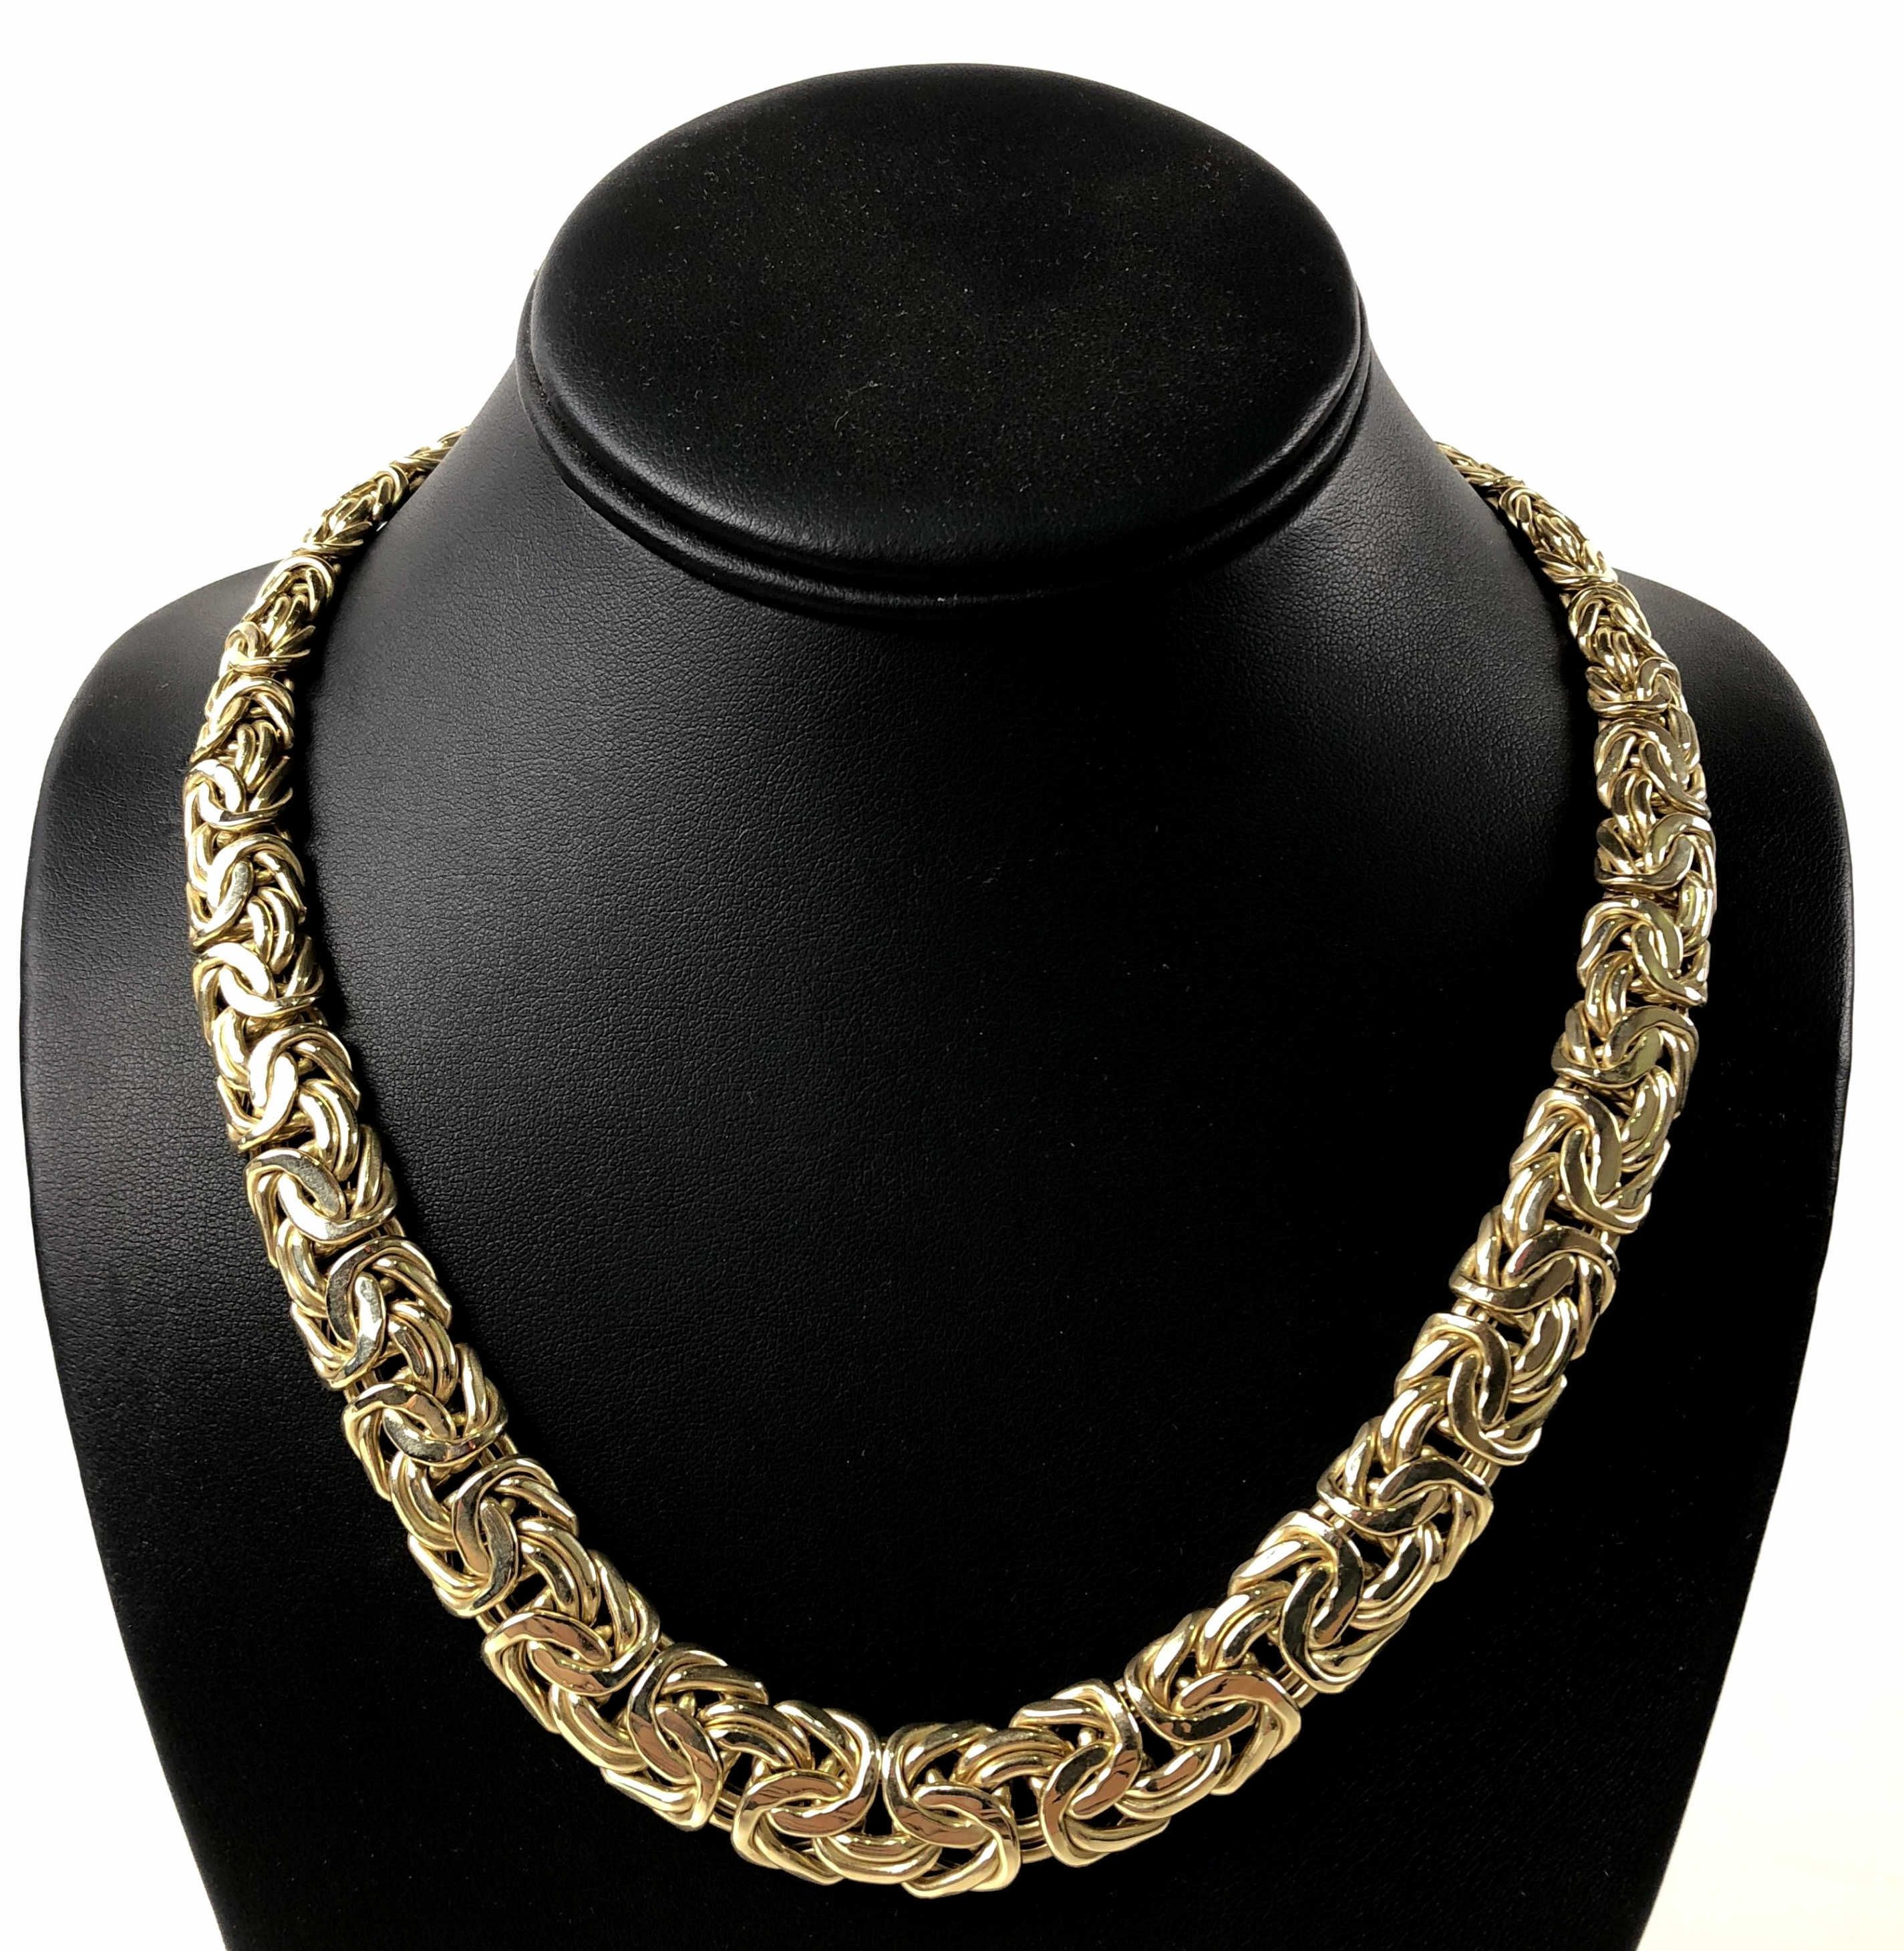 14k Yellow Gold Byzantine Necklace Sold 2 500 Byzantine Necklace Necklace Chain Necklace